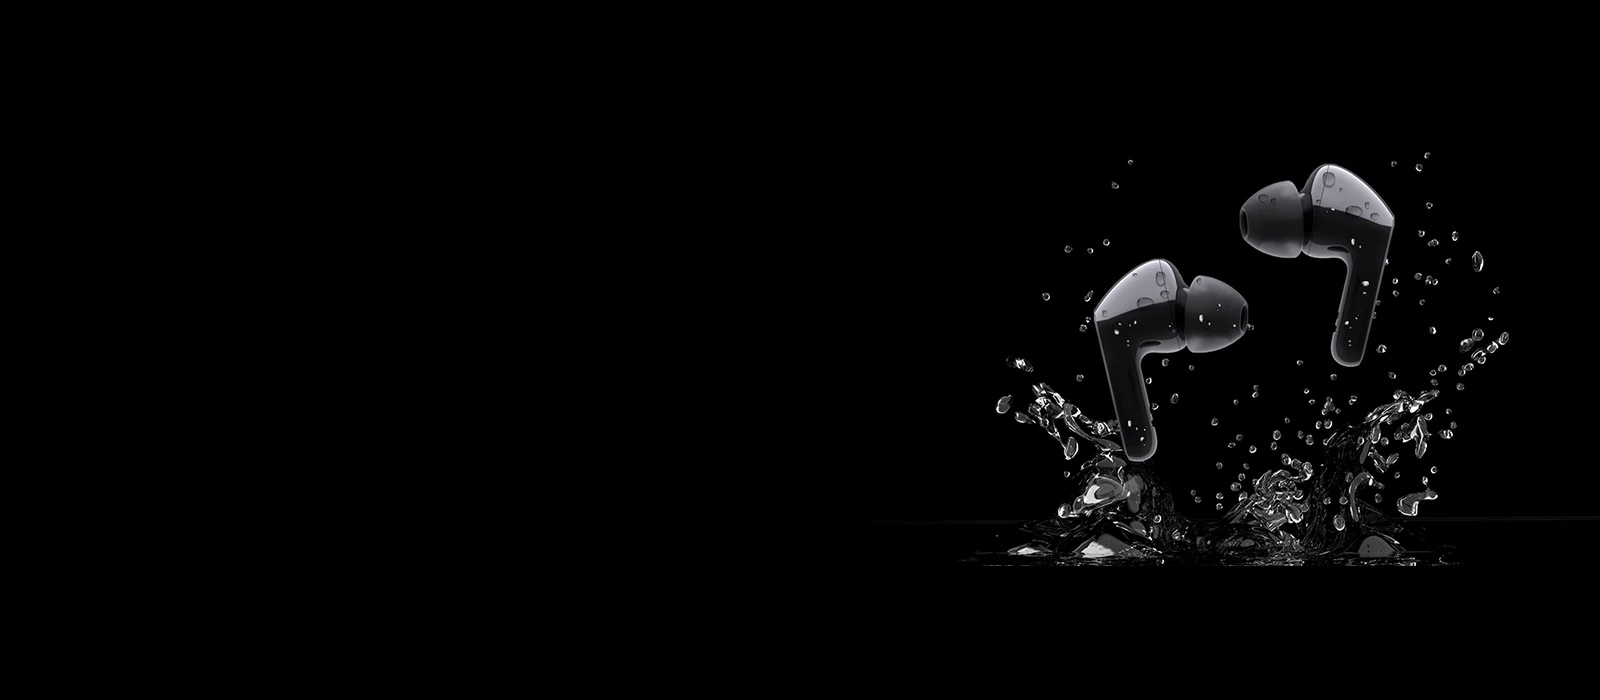 An image of two black earbuds jumping on a puddle of water